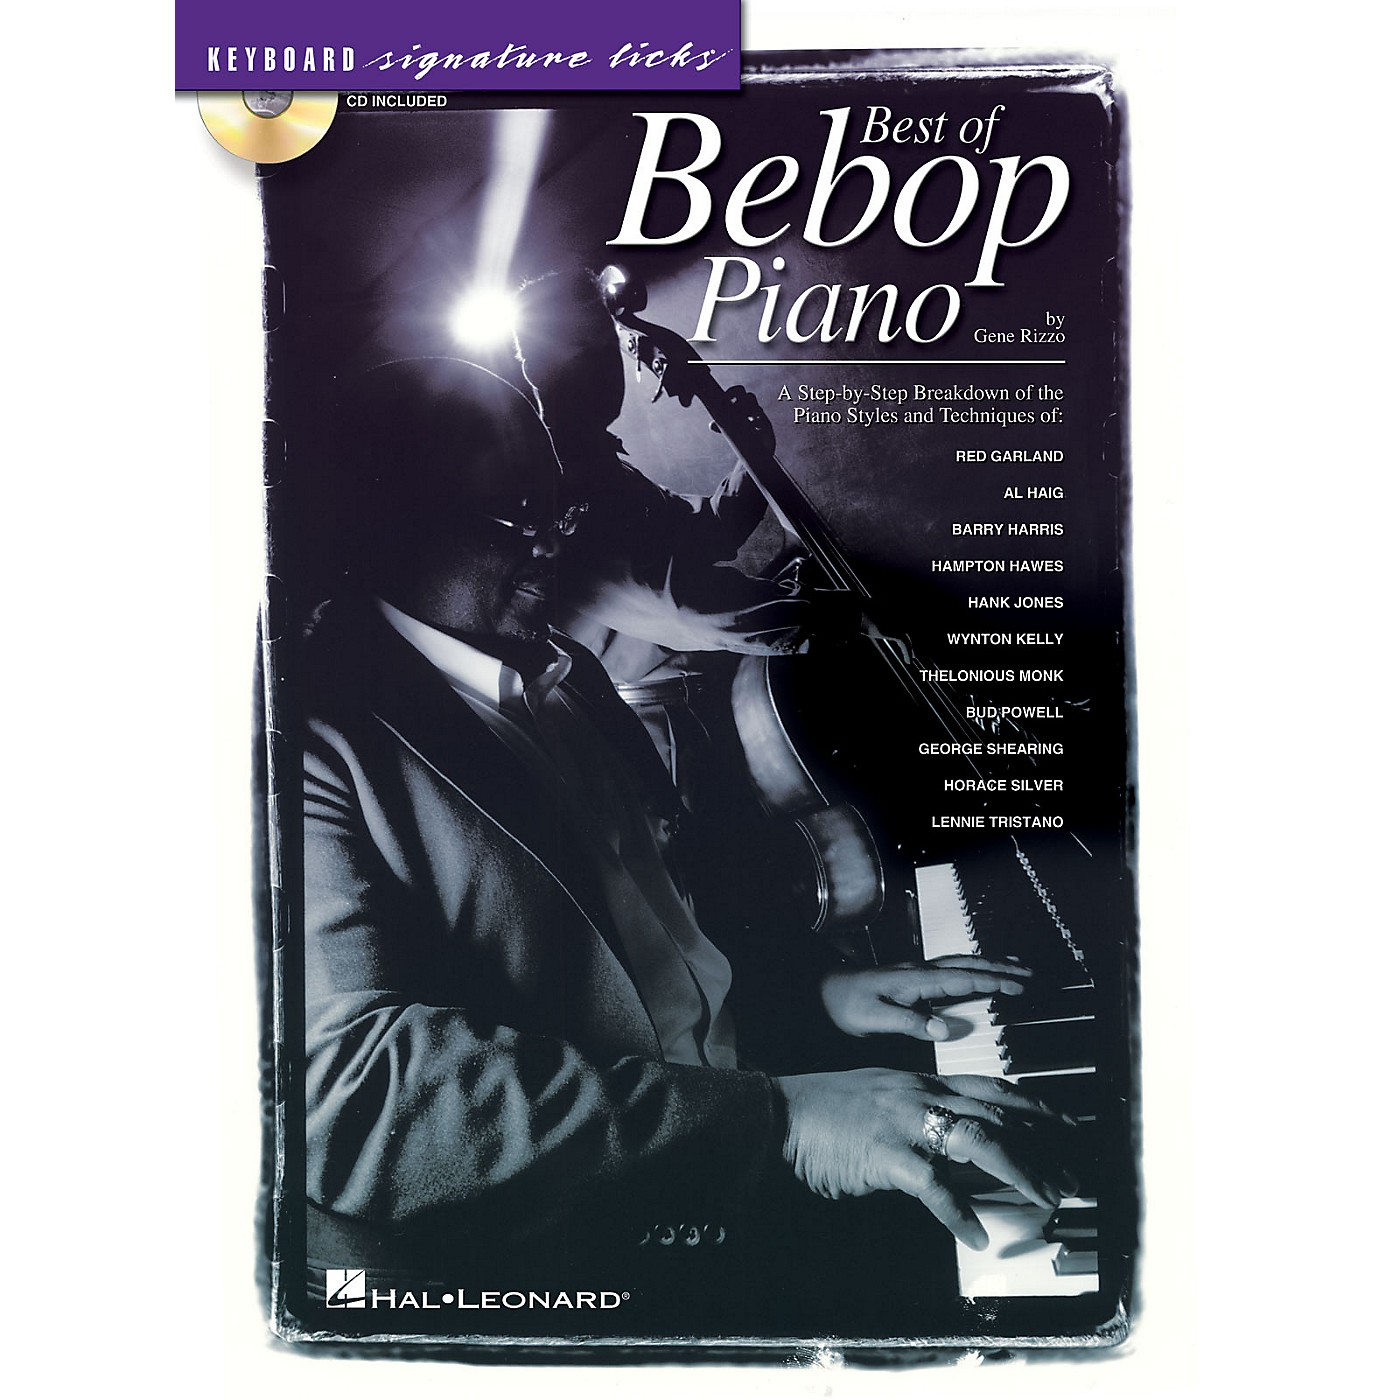 Hal Leonard Best of Bebop Piano Signature Licks Keyboard Series Softcover with CD Written by Gene Rizzo thumbnail